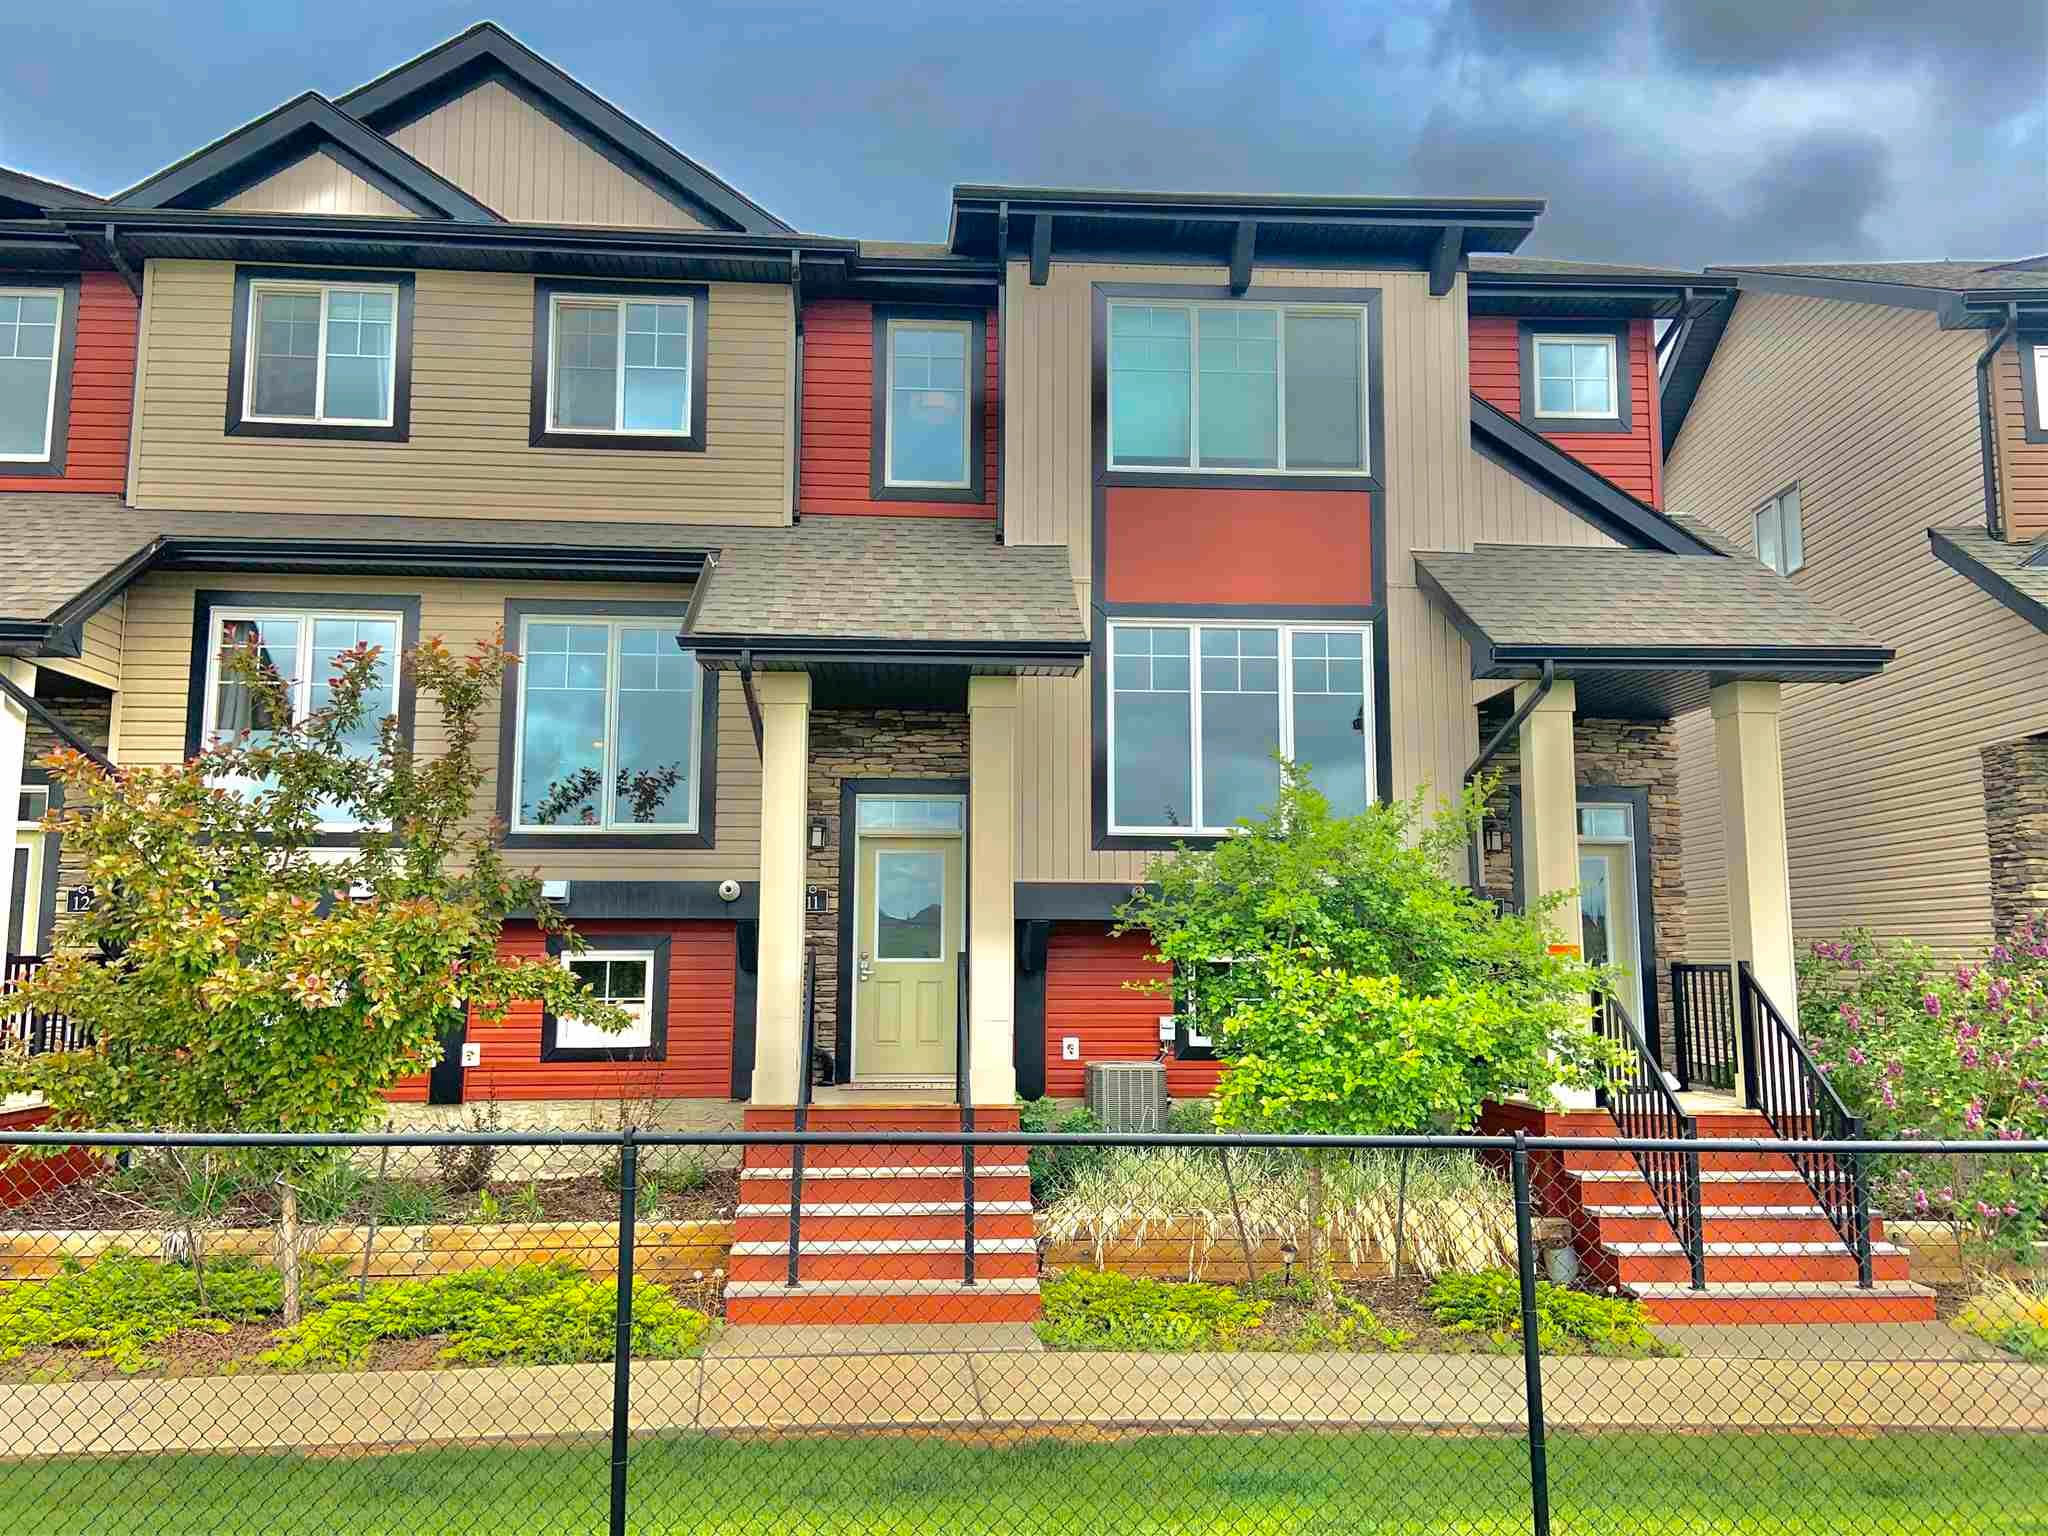 Main Photo: #11, 1776 CUNNINGHAM Way in Edmonton: Zone 55 Townhouse for sale : MLS®# E4248766